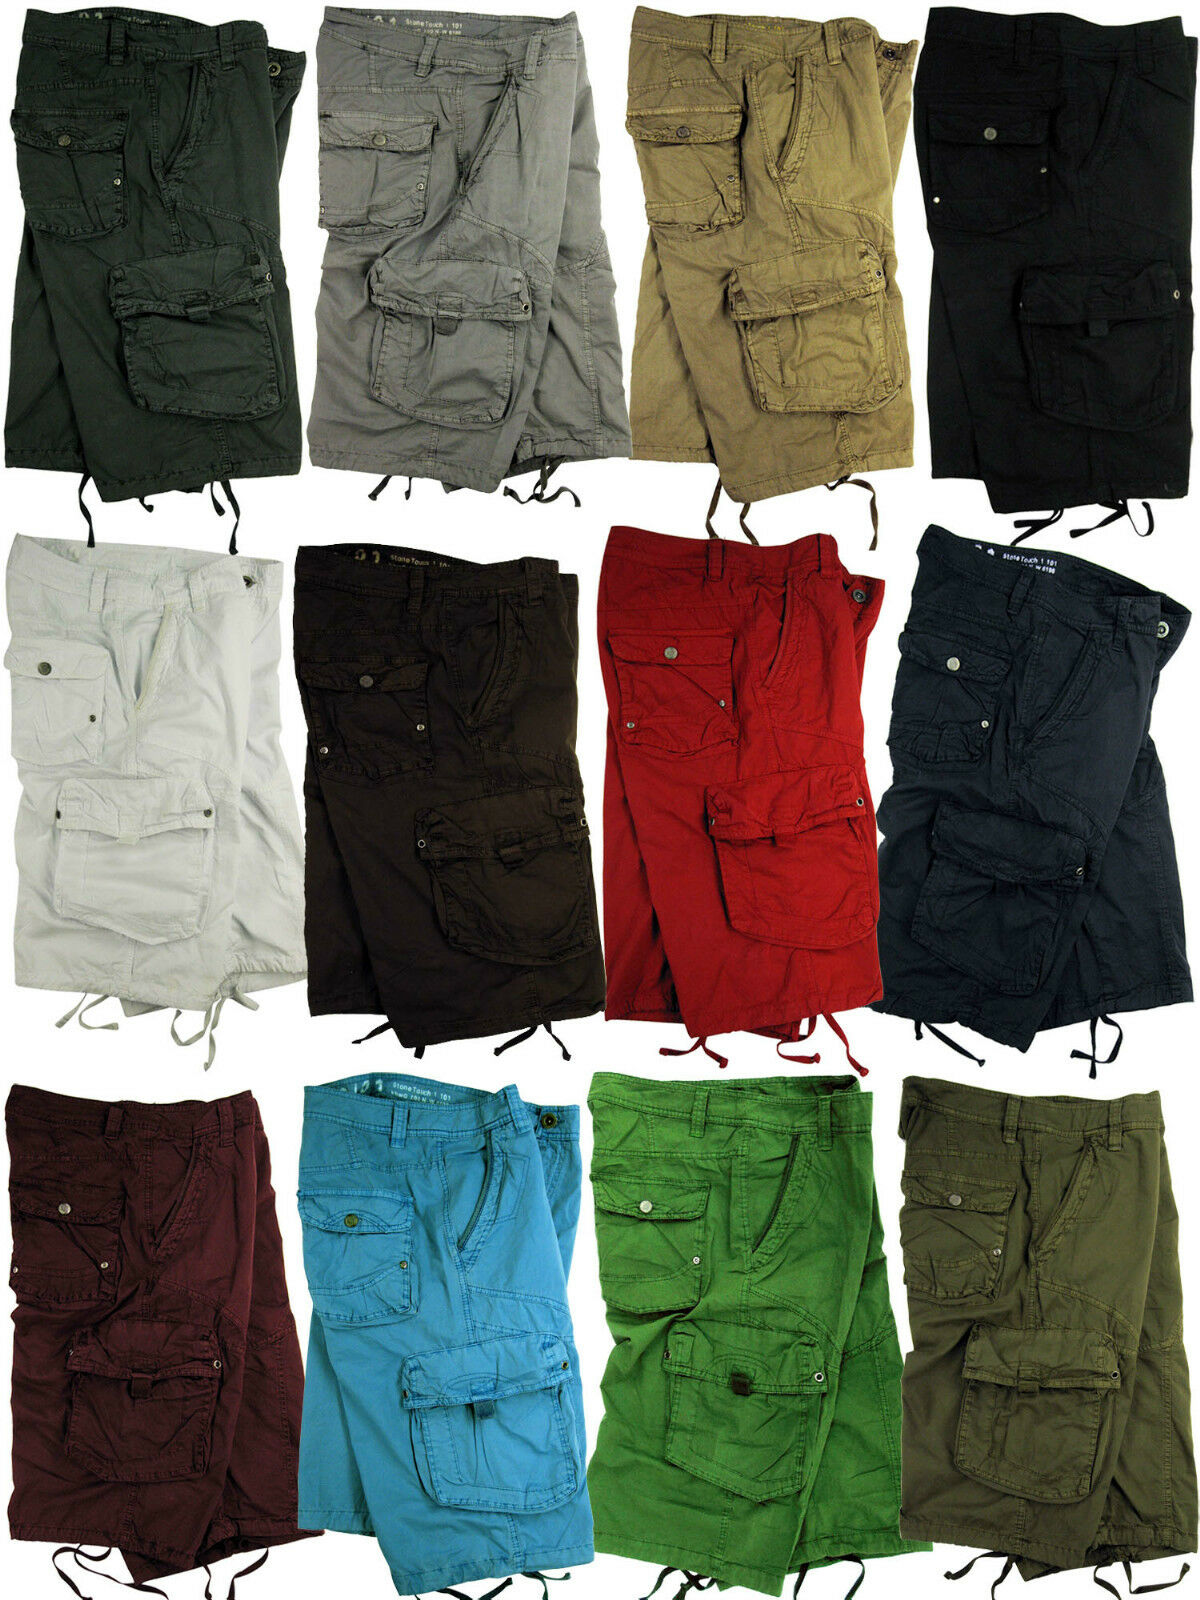 BNWT MENS MILITARY/_STYLE COLOR CARGO SHORT sizes:30-42 #818s